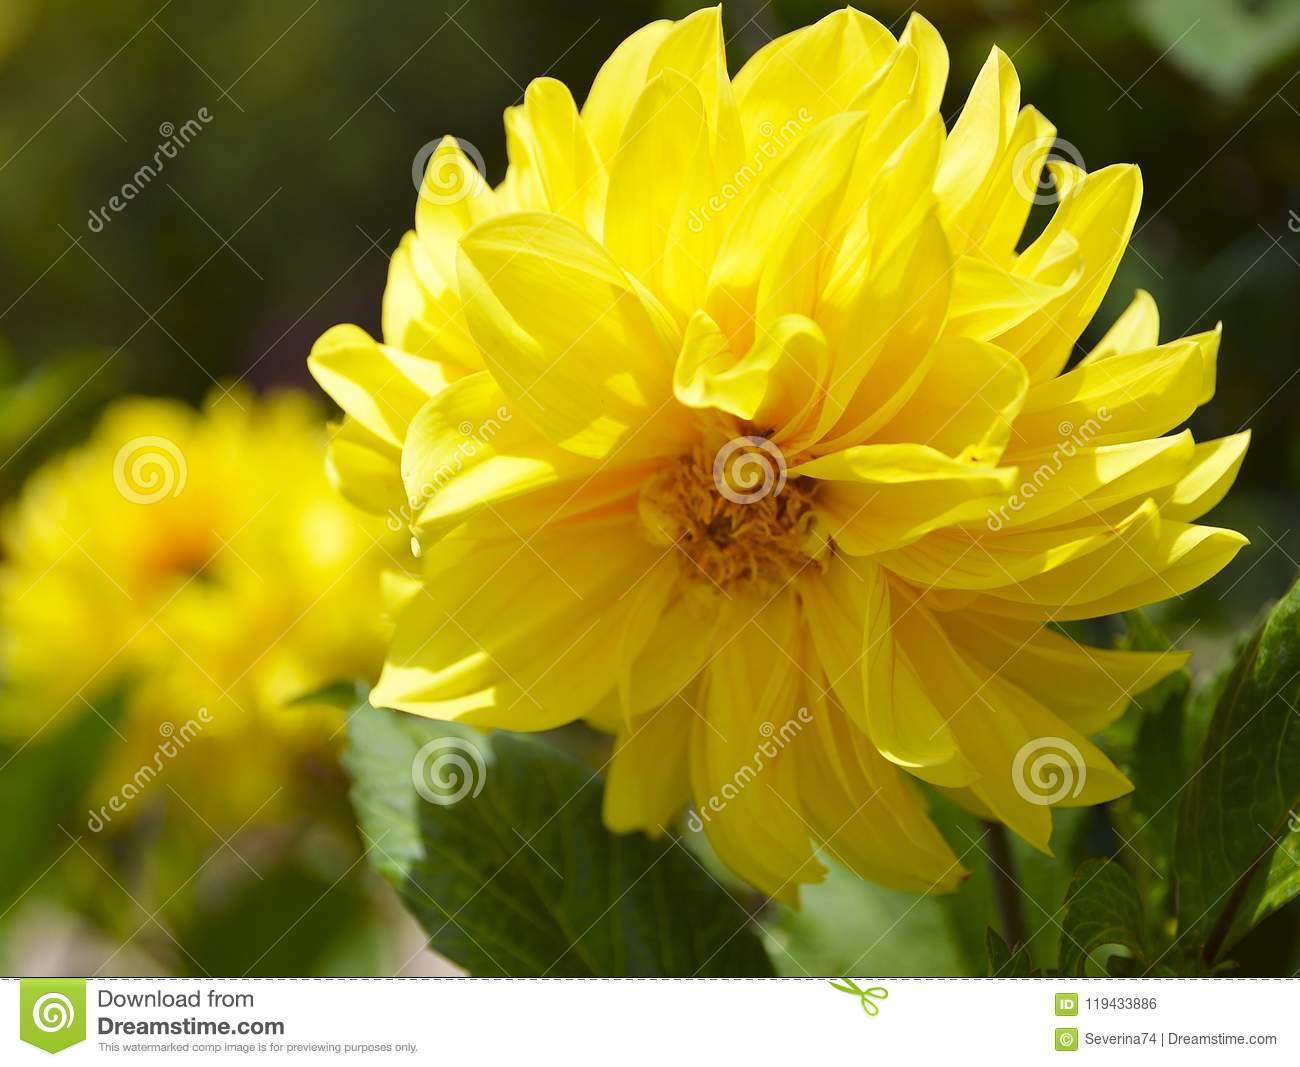 Yellow dahlia flower in gardenight floral summer background yellow dahlia flower in gardenight floral summer background izmirmasajfo